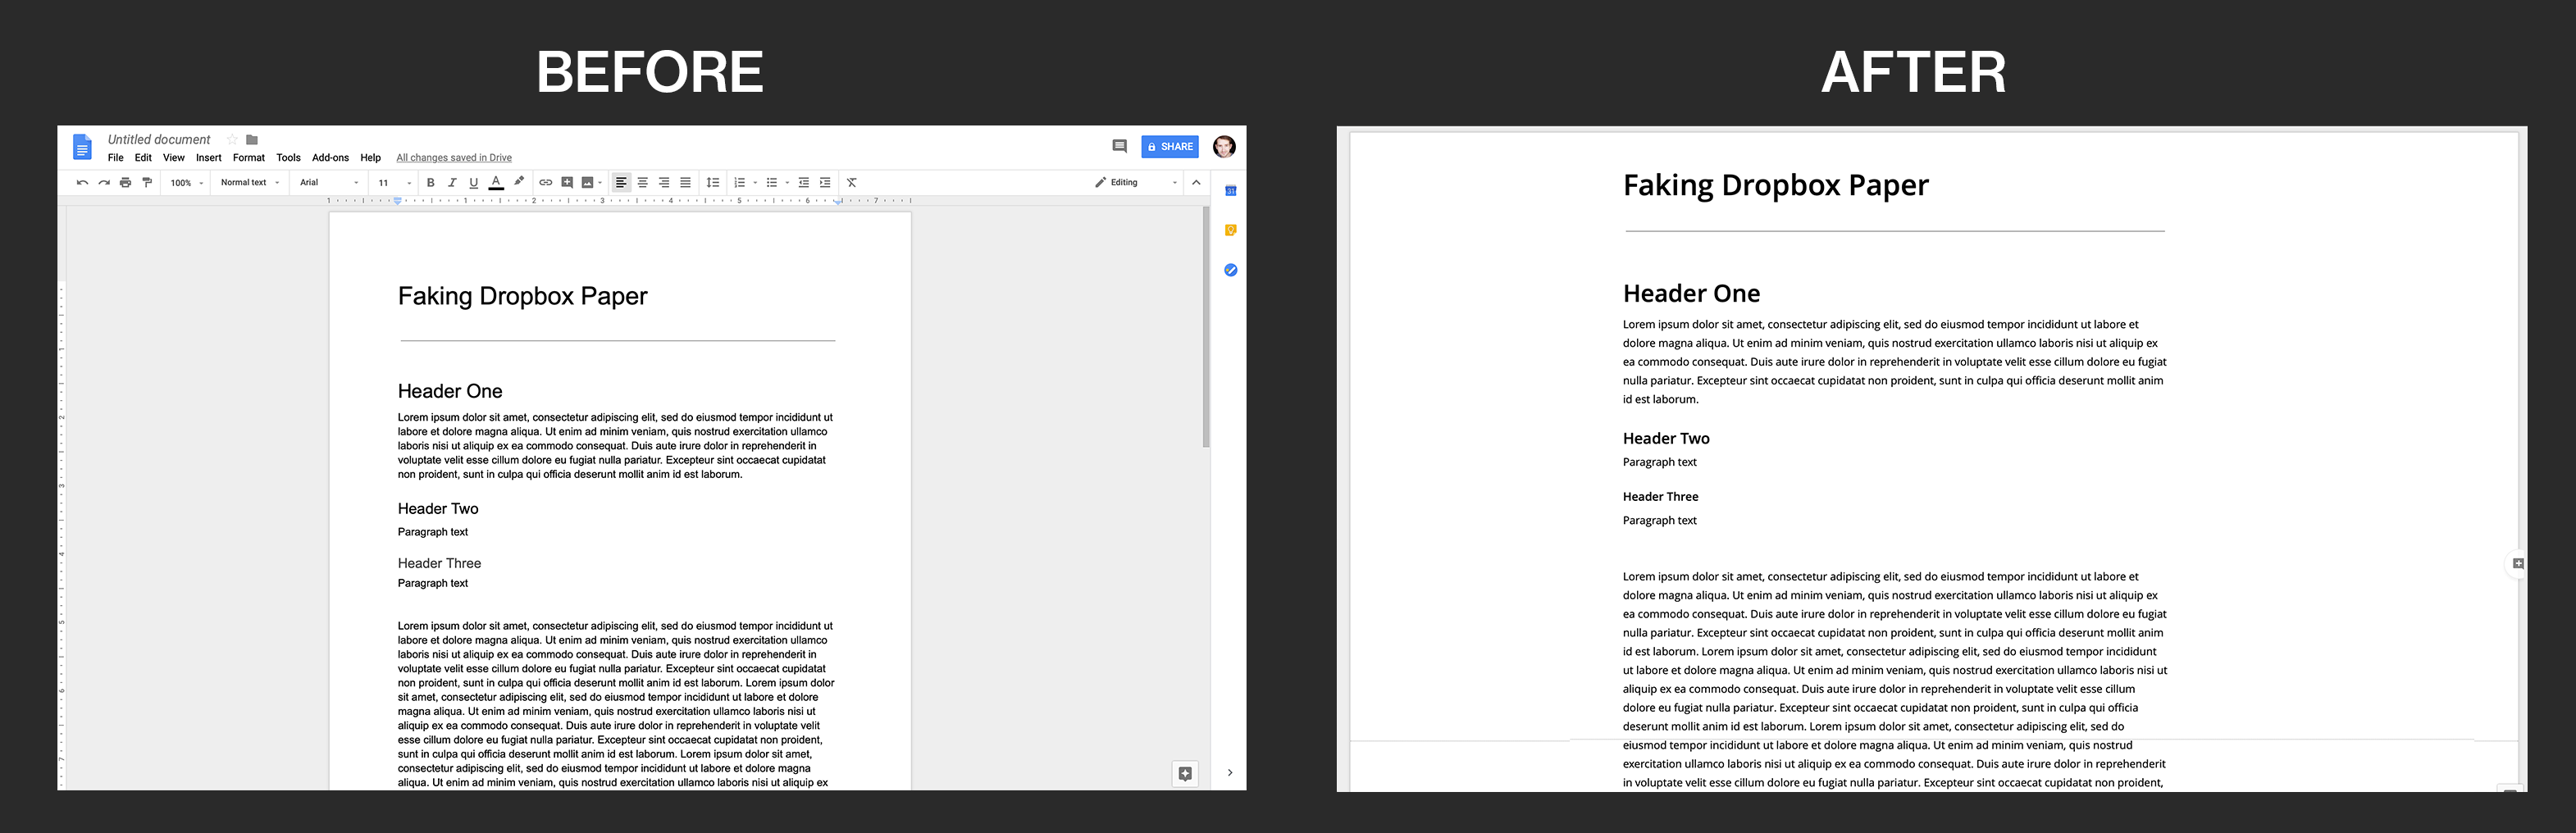 How to Make Google Docs Look Like Dropbox Paper - Featured